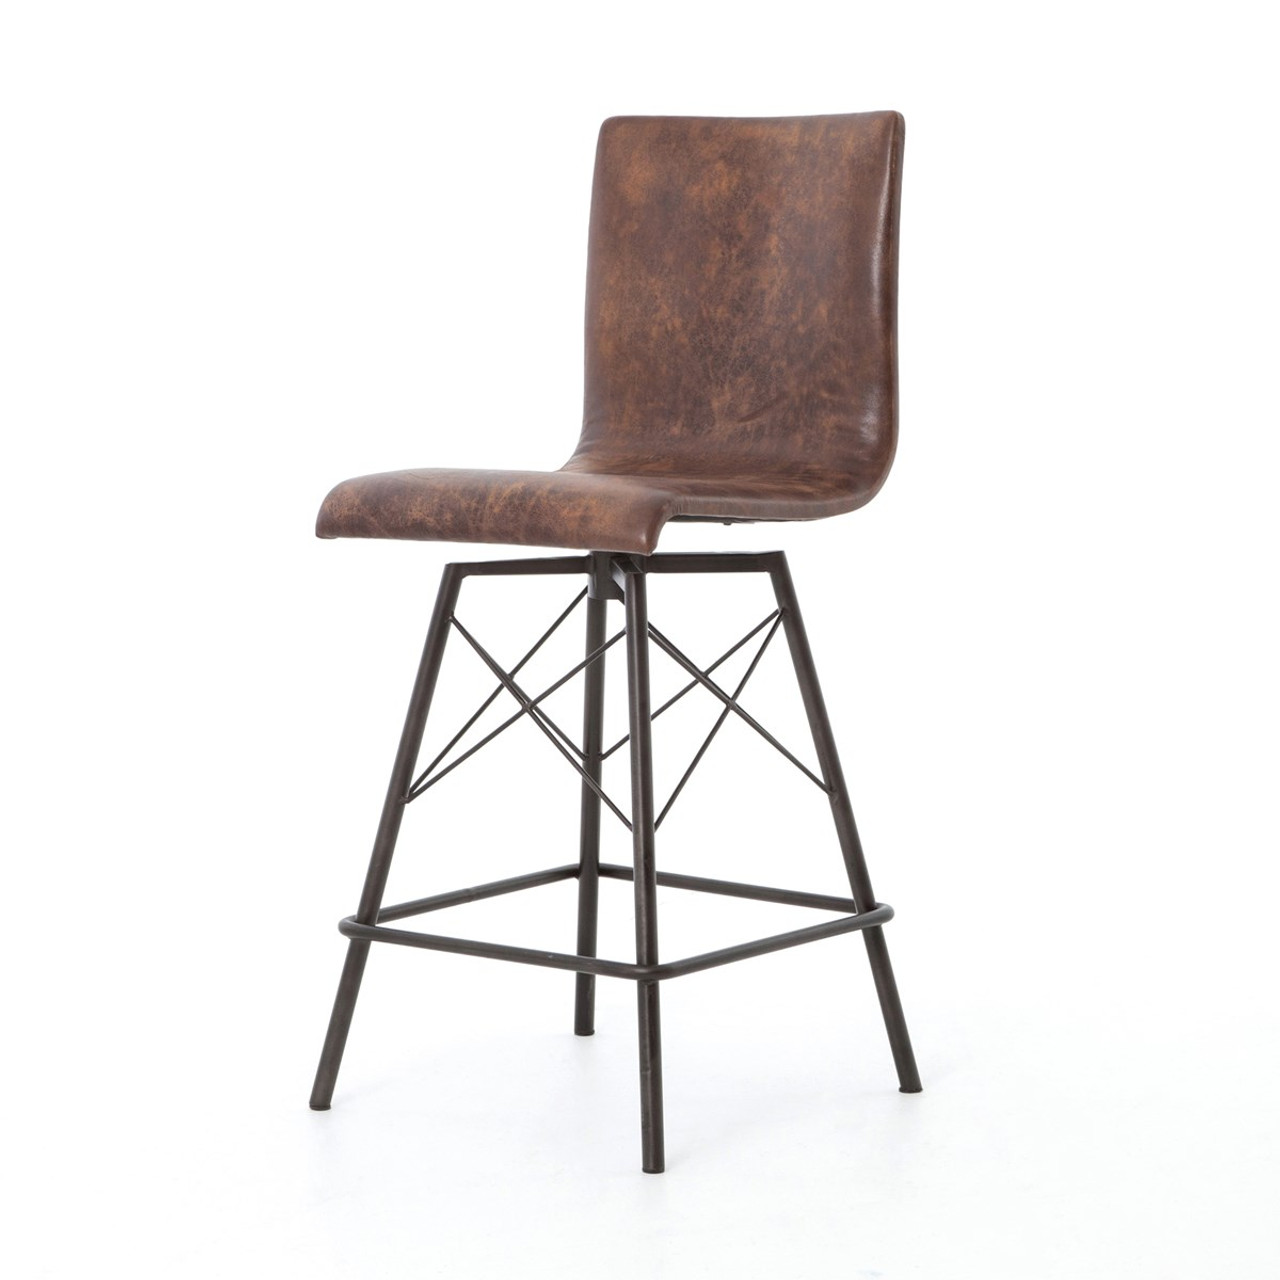 Pleasing Diaw Distressed Leather Swivel Counterstool Uwap Interior Chair Design Uwaporg